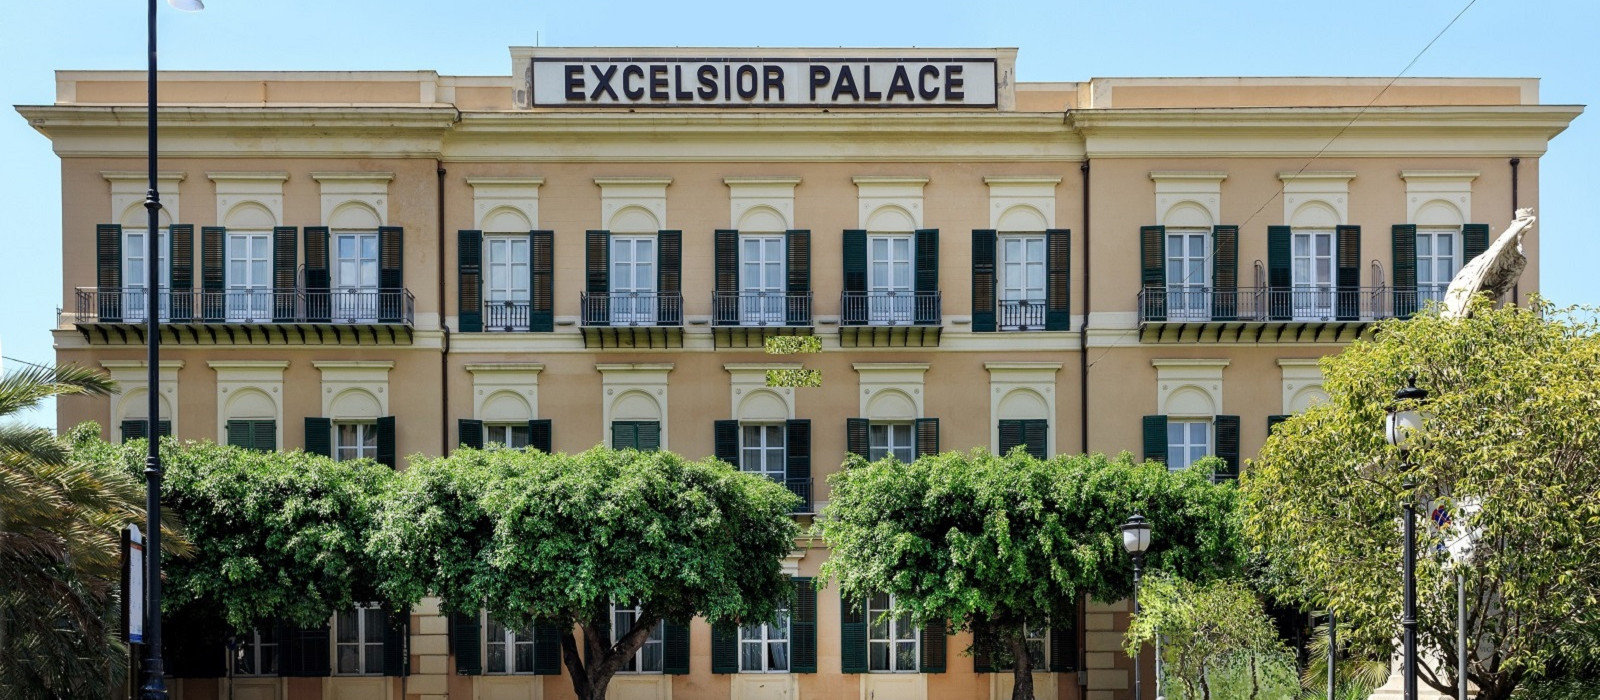 Hotel Excelsior Palace Palermo Italien